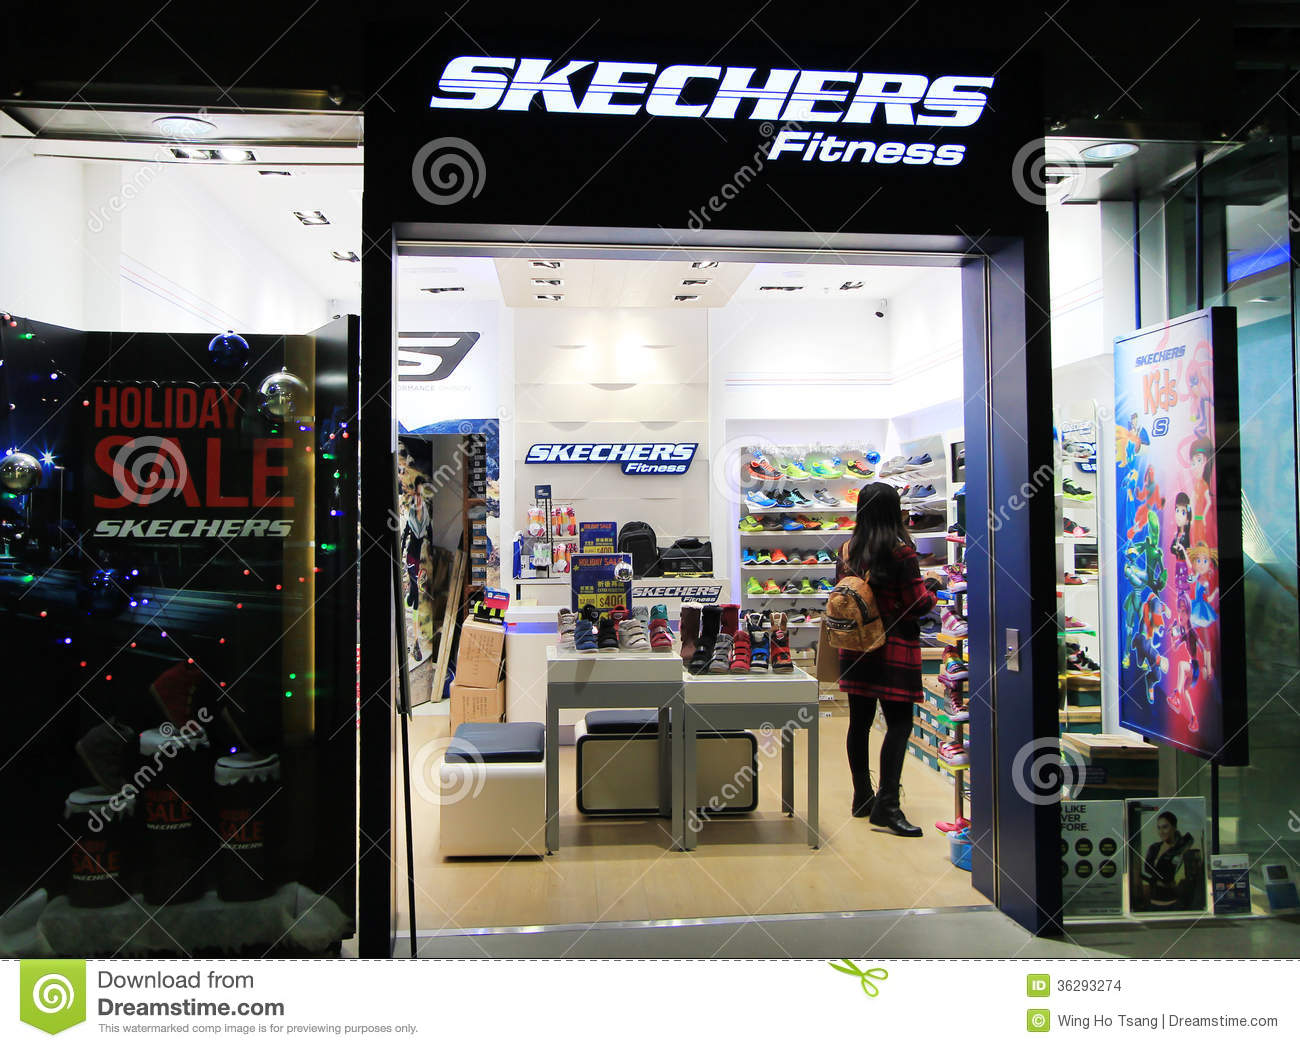 fb13cd572e13 Skechers shop in hong kong editorial stock image. Image of skechers ...